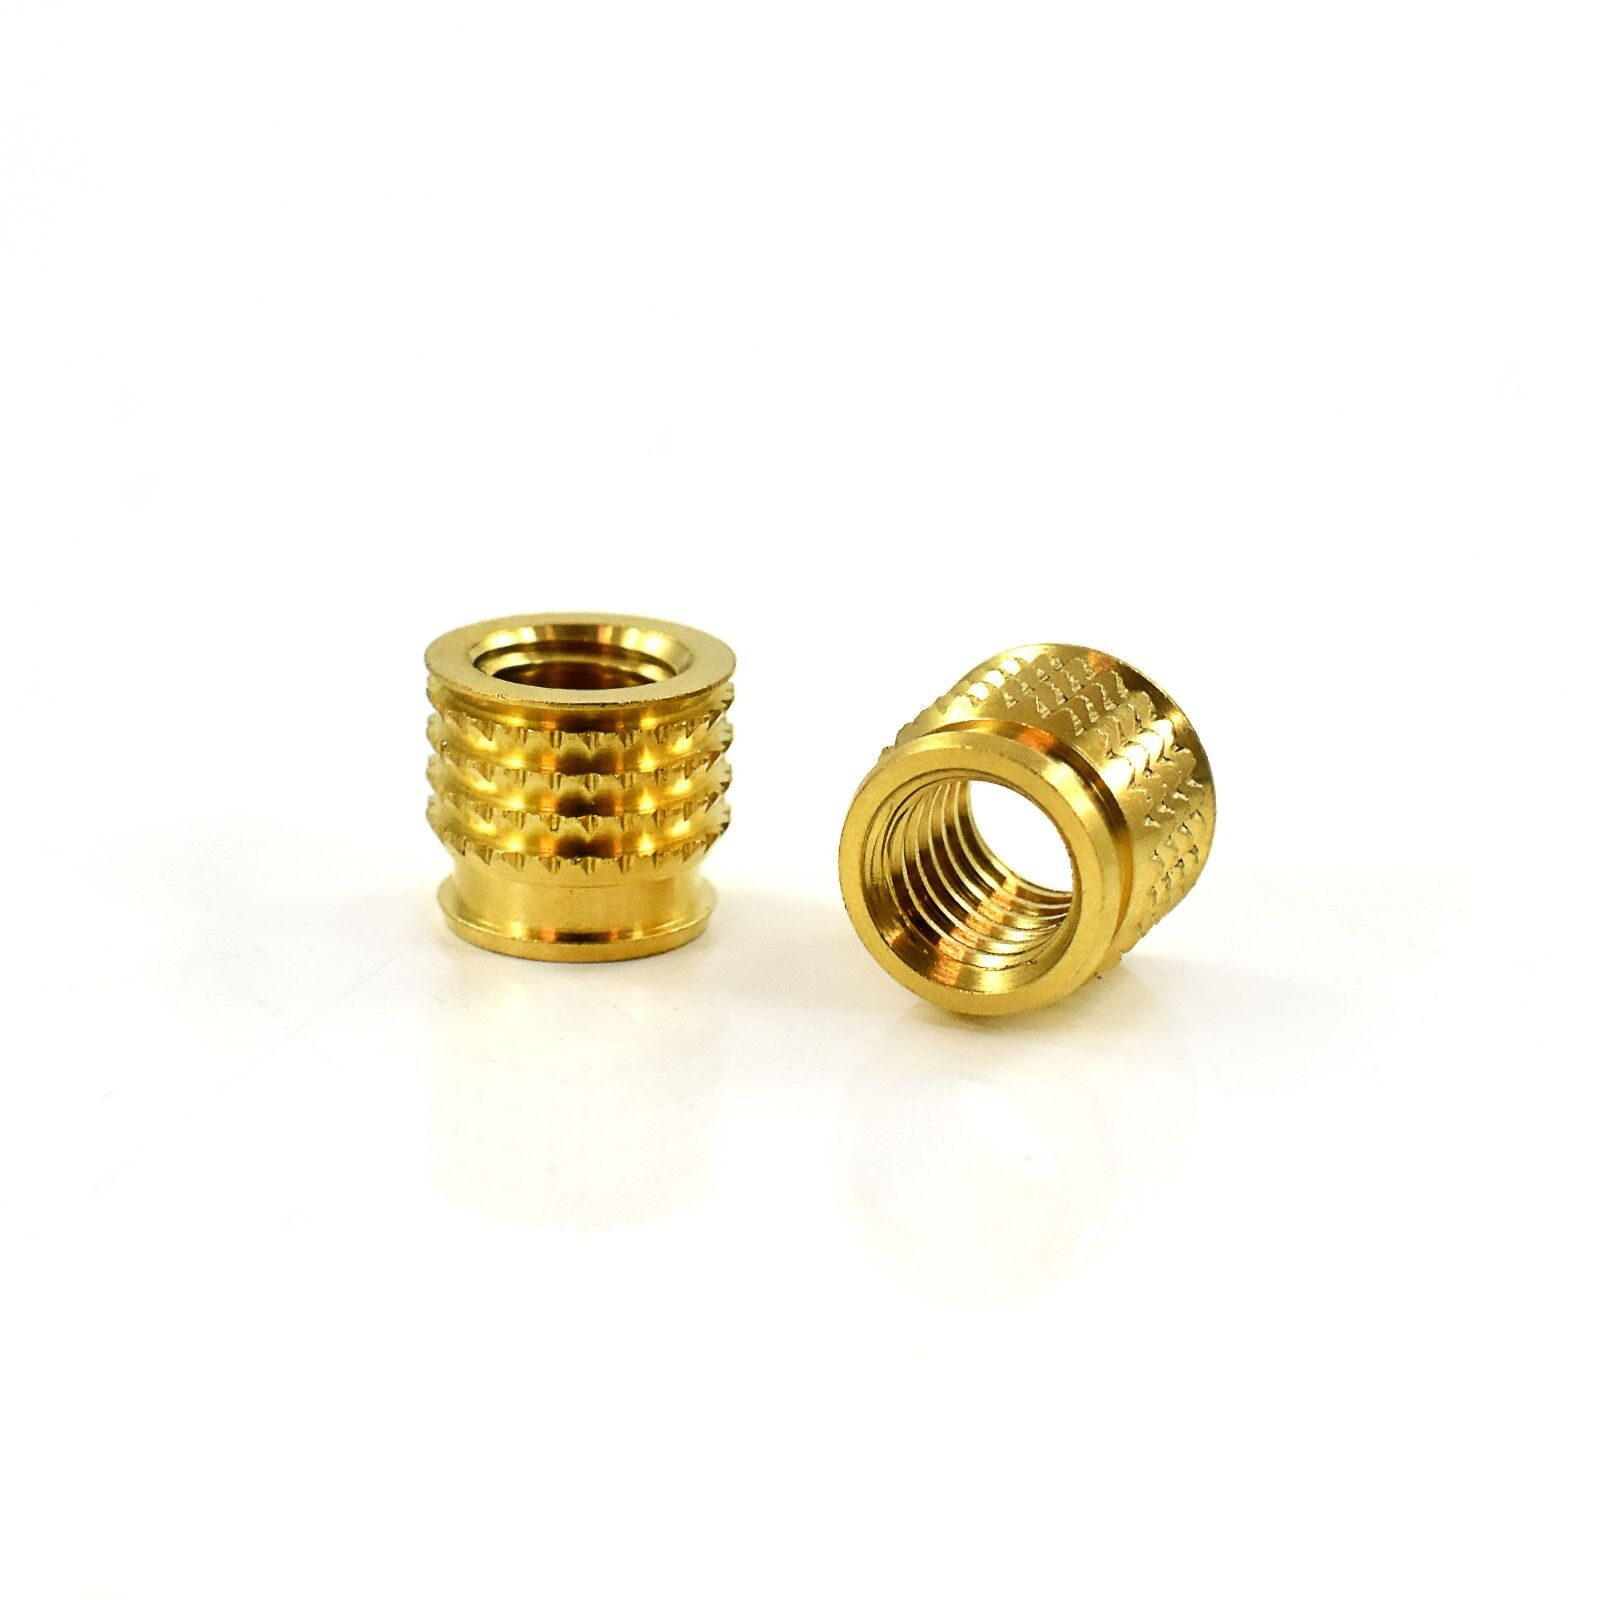 Pack of 50 x M6 x 12.3mm Threaded Brass Inserts for Plastic